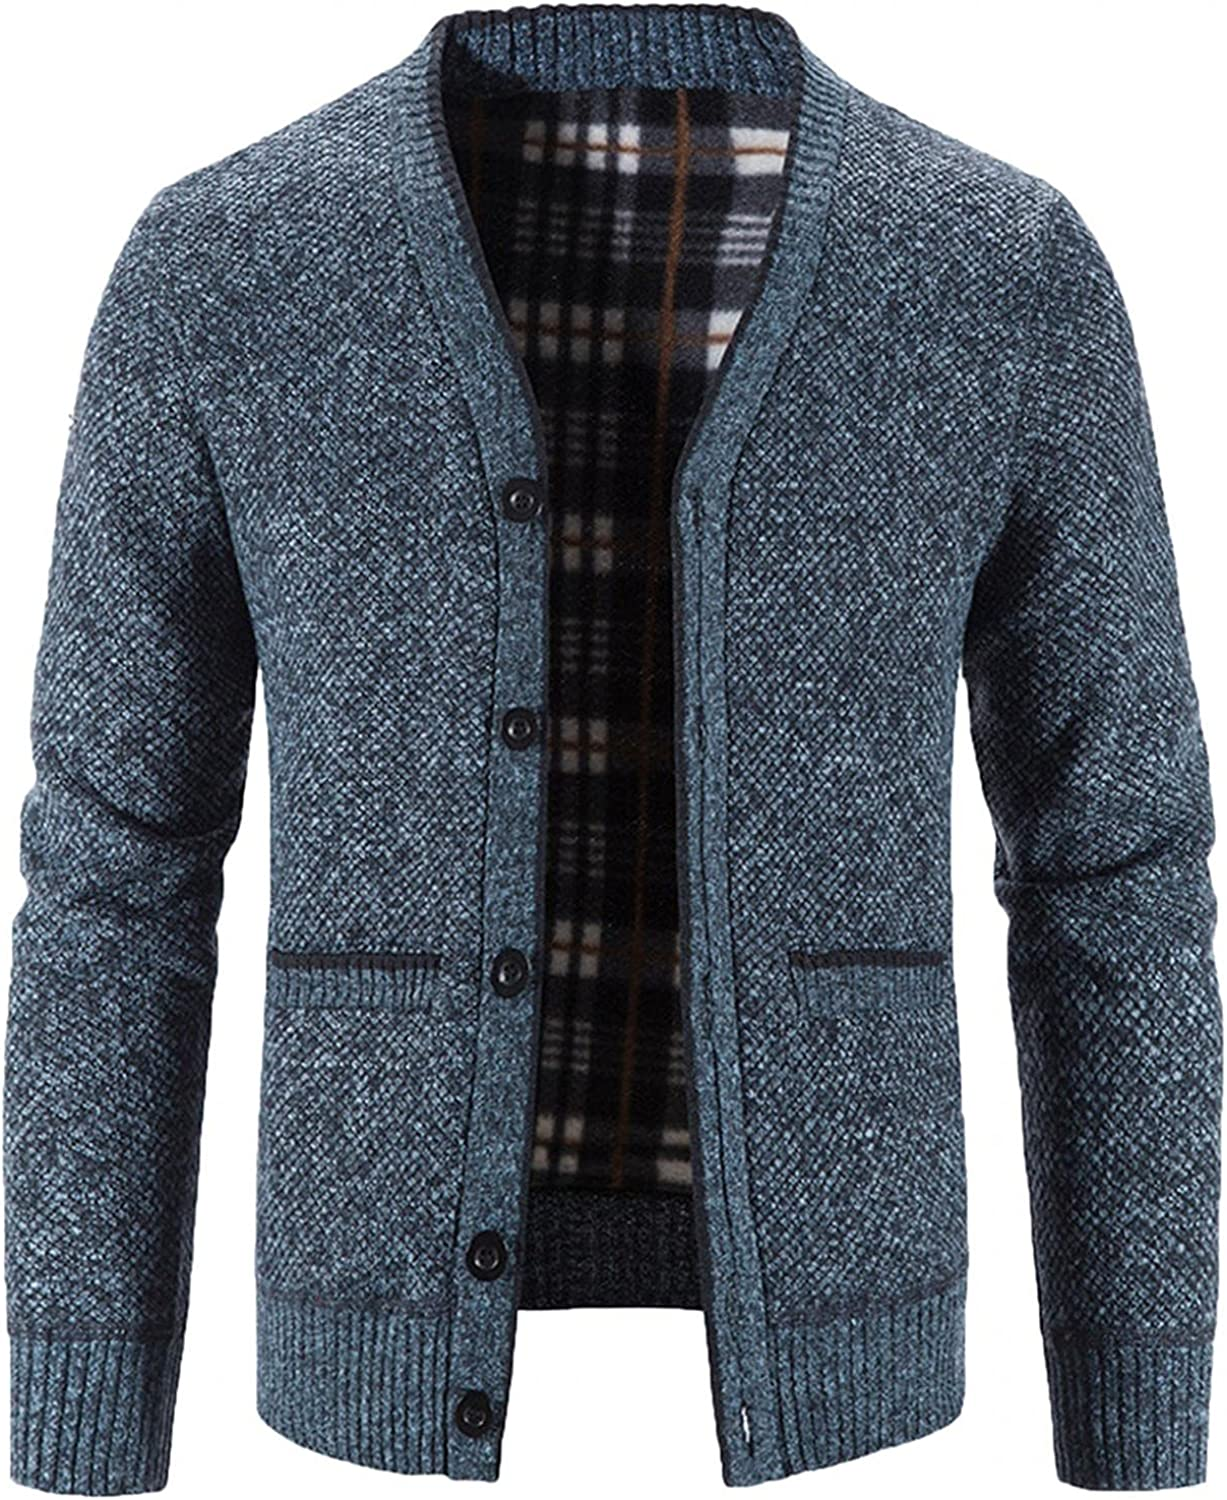 Aayomet Fashion Cardigan for Men Winter Warm Solid Button Long Sleeve V-Neck Casual Pullover Tops Blouses Coat with Pockets